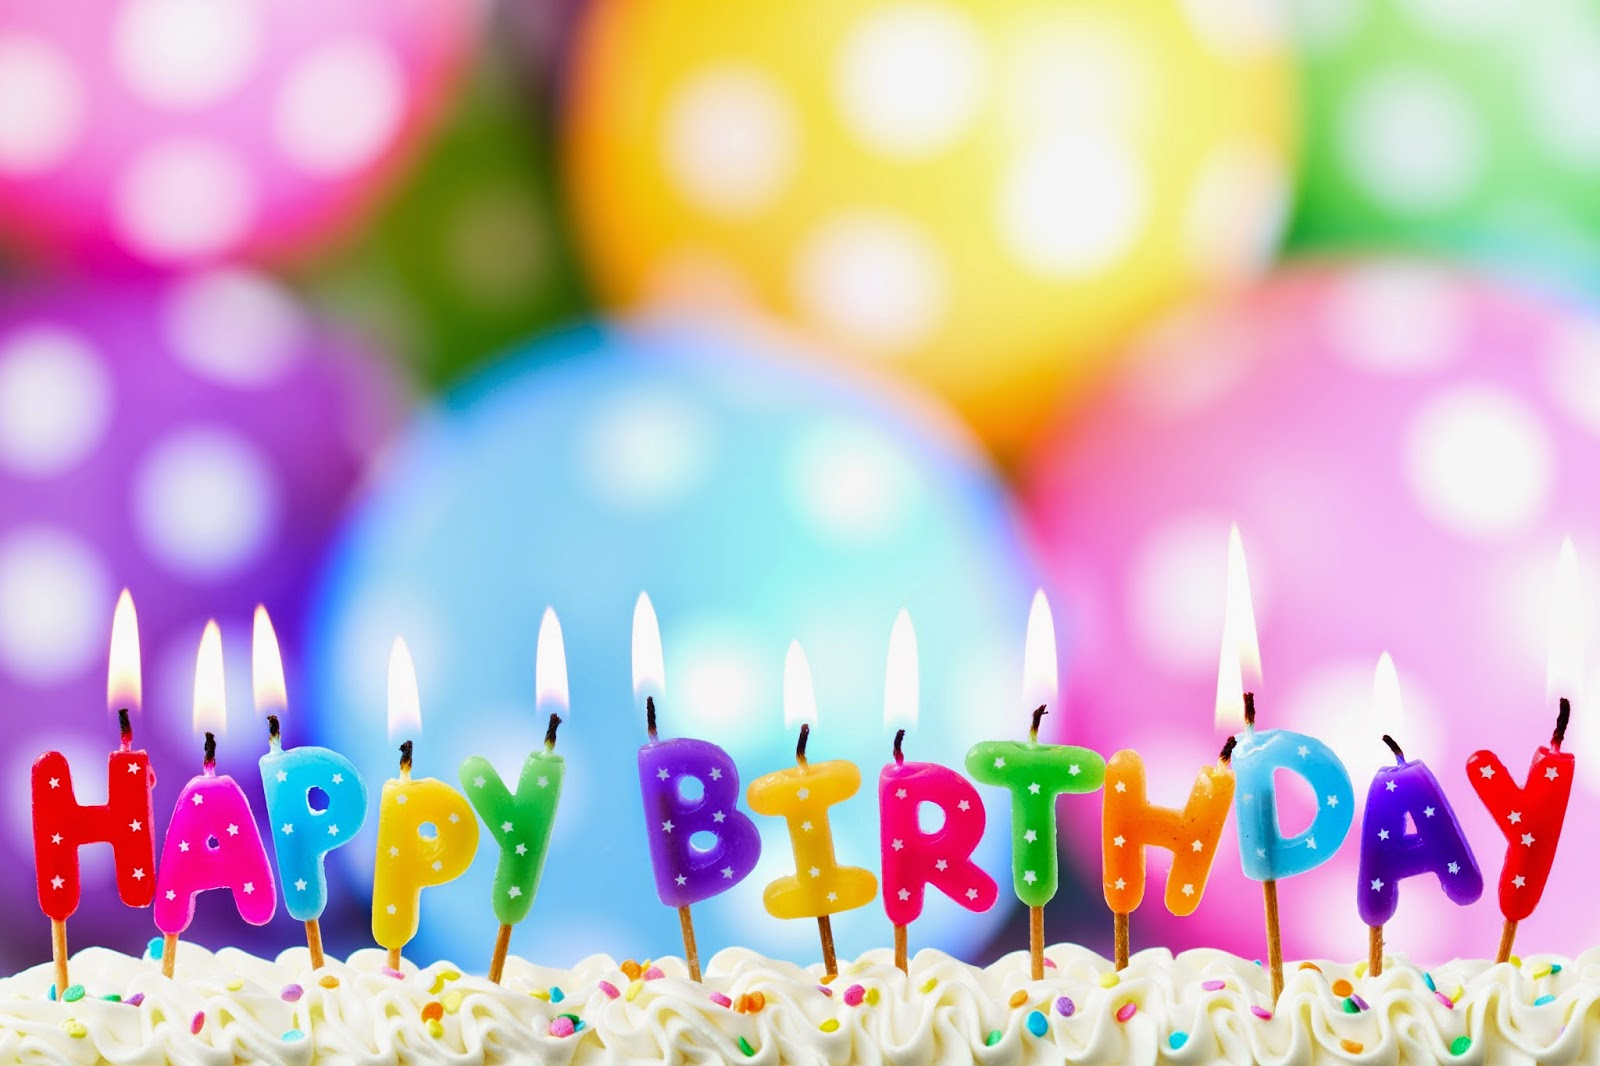 happy birthday images for facebook ; Happy-Birthday-Image-for-Facebook